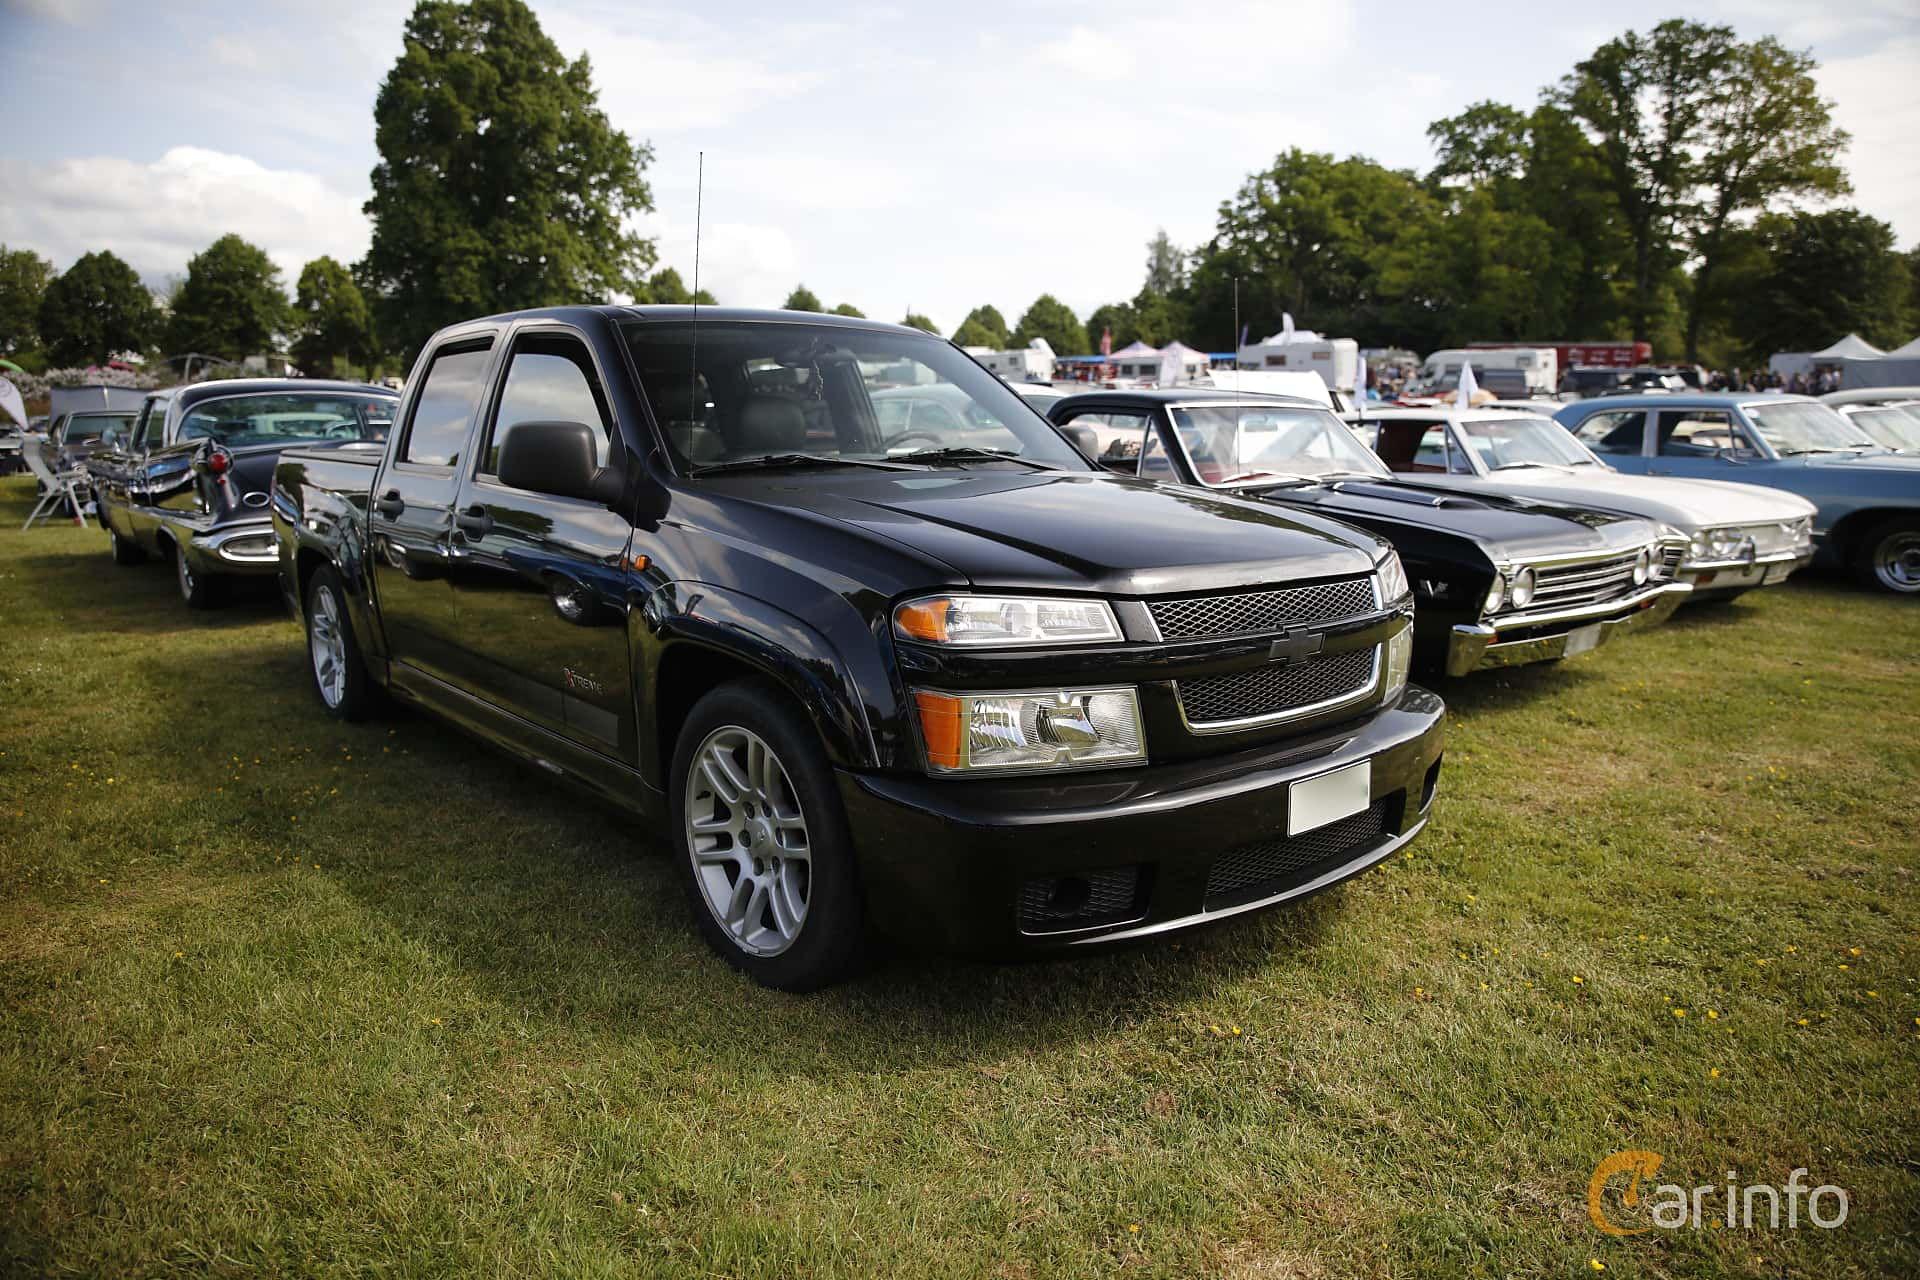 Chevrolet Colorado Crew Cab (NA) 3.5 Automatic, 223hp, 2005 at Hässleholm Power Start of Summer Meet 2016